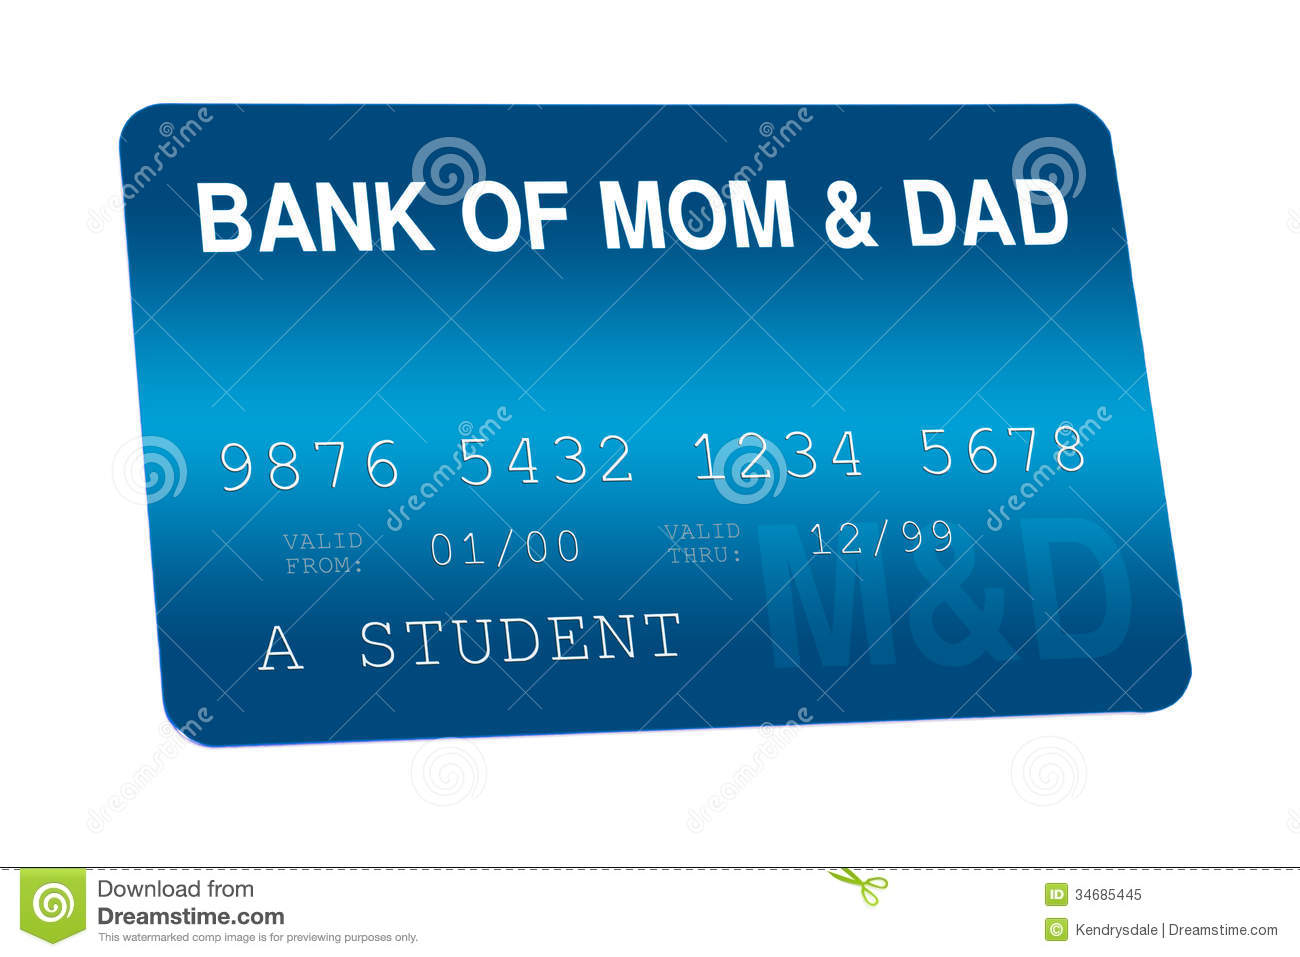 bank-mom-dad-credit-card-family-finances-finance-concept-fake-indicating-parents-financial-backing-their-children-34685445.jpg